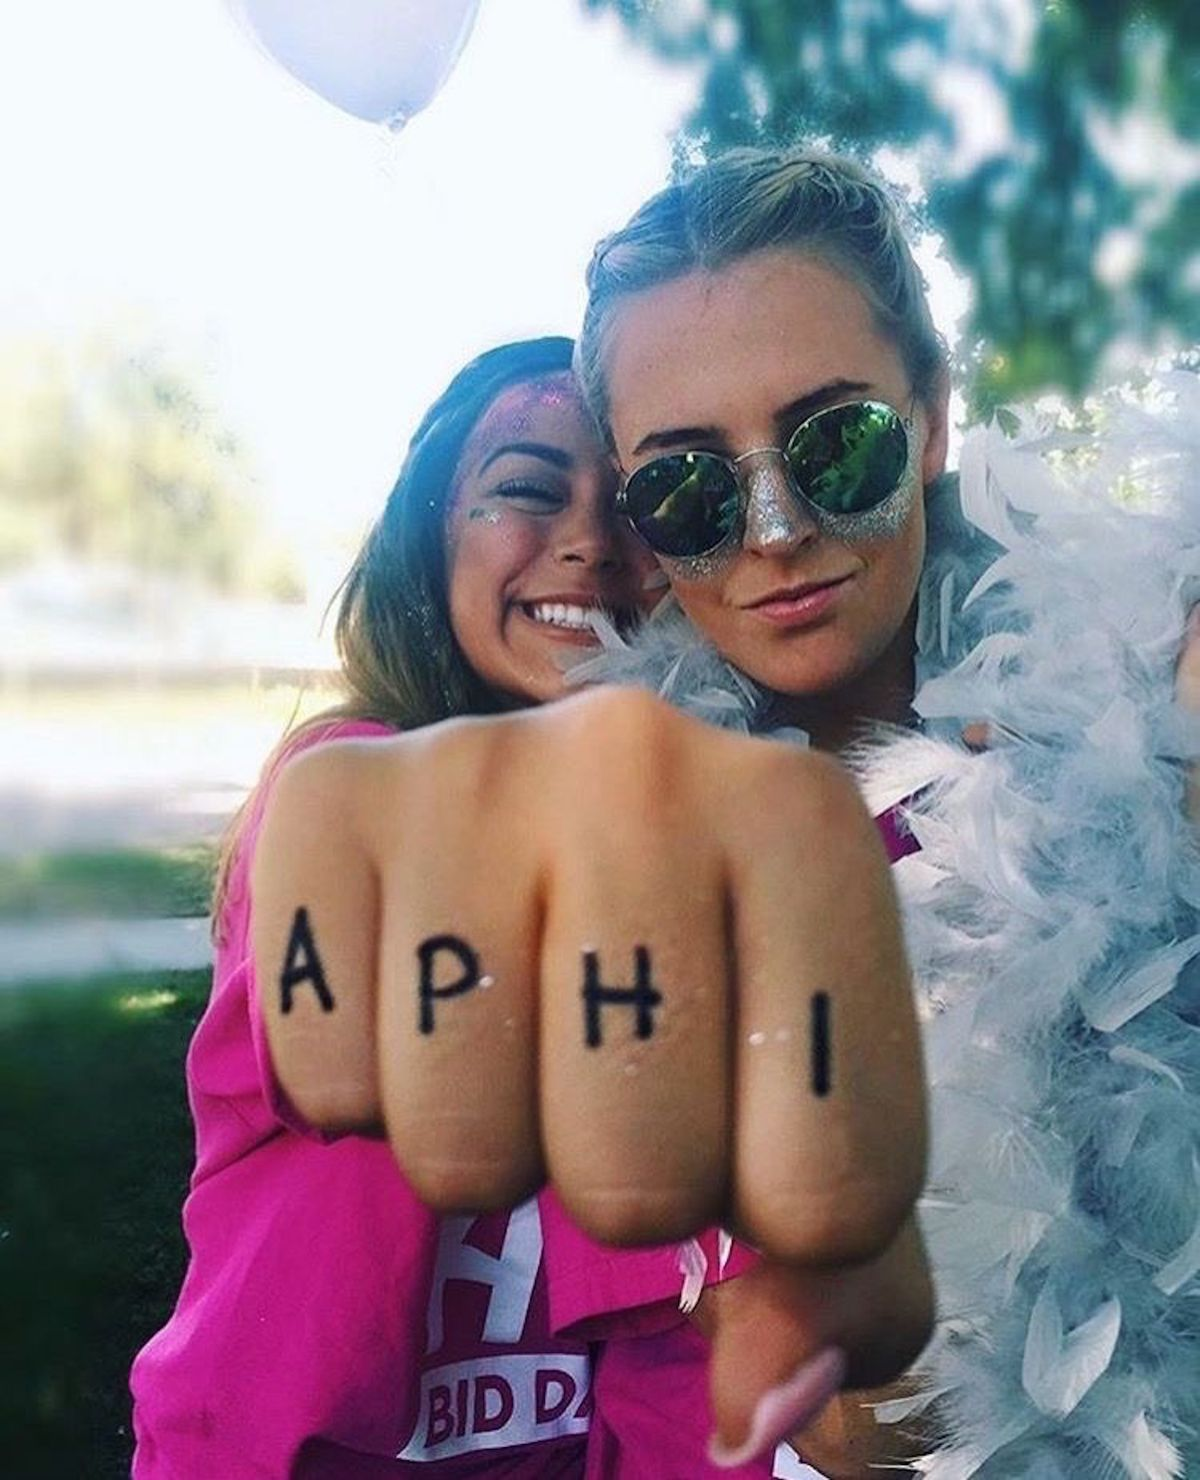 10 Signs You're An Alpha Phi